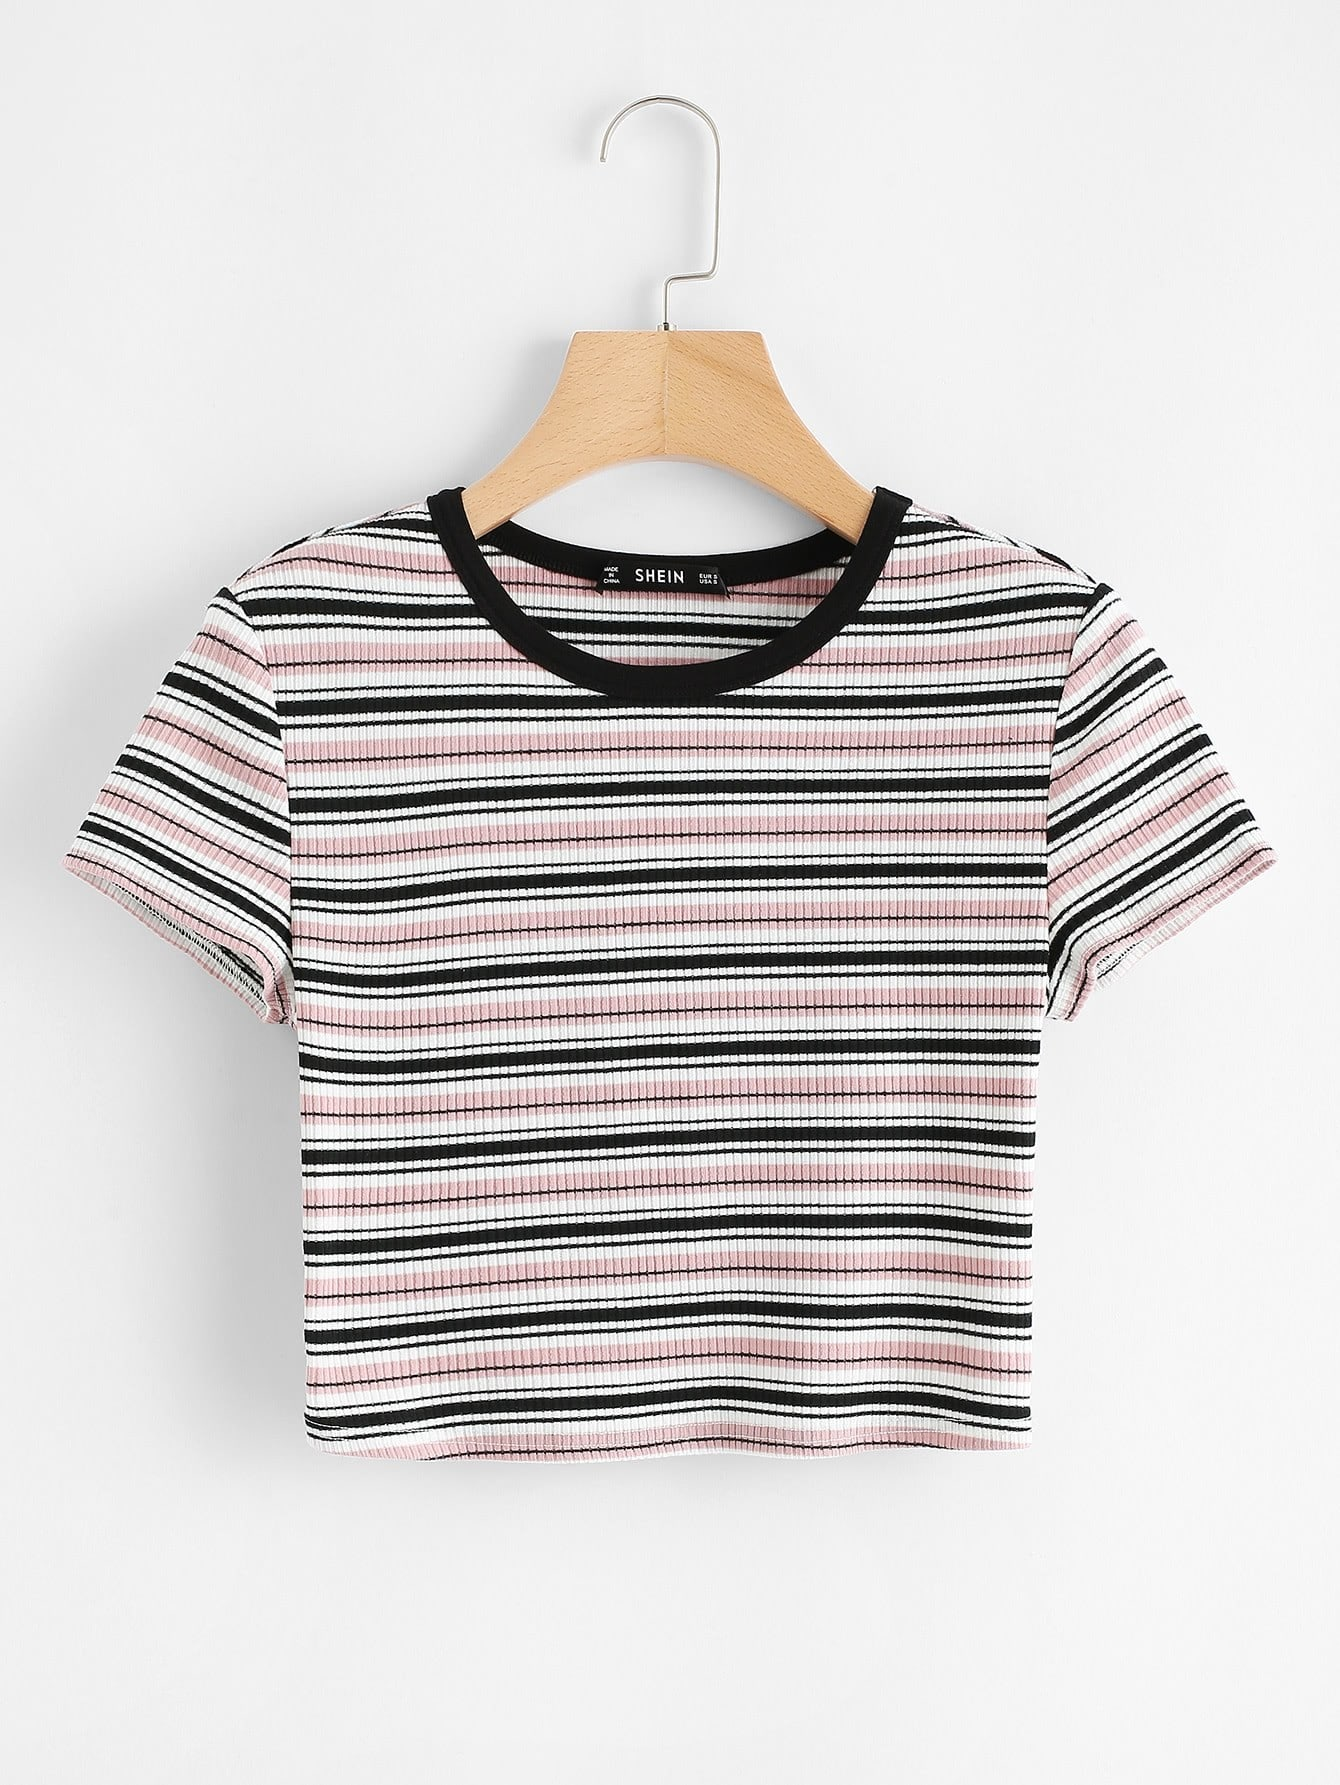 Contrast Tape Striped Print Ribbed Tee contrast trim ribbed tee with striped shorts